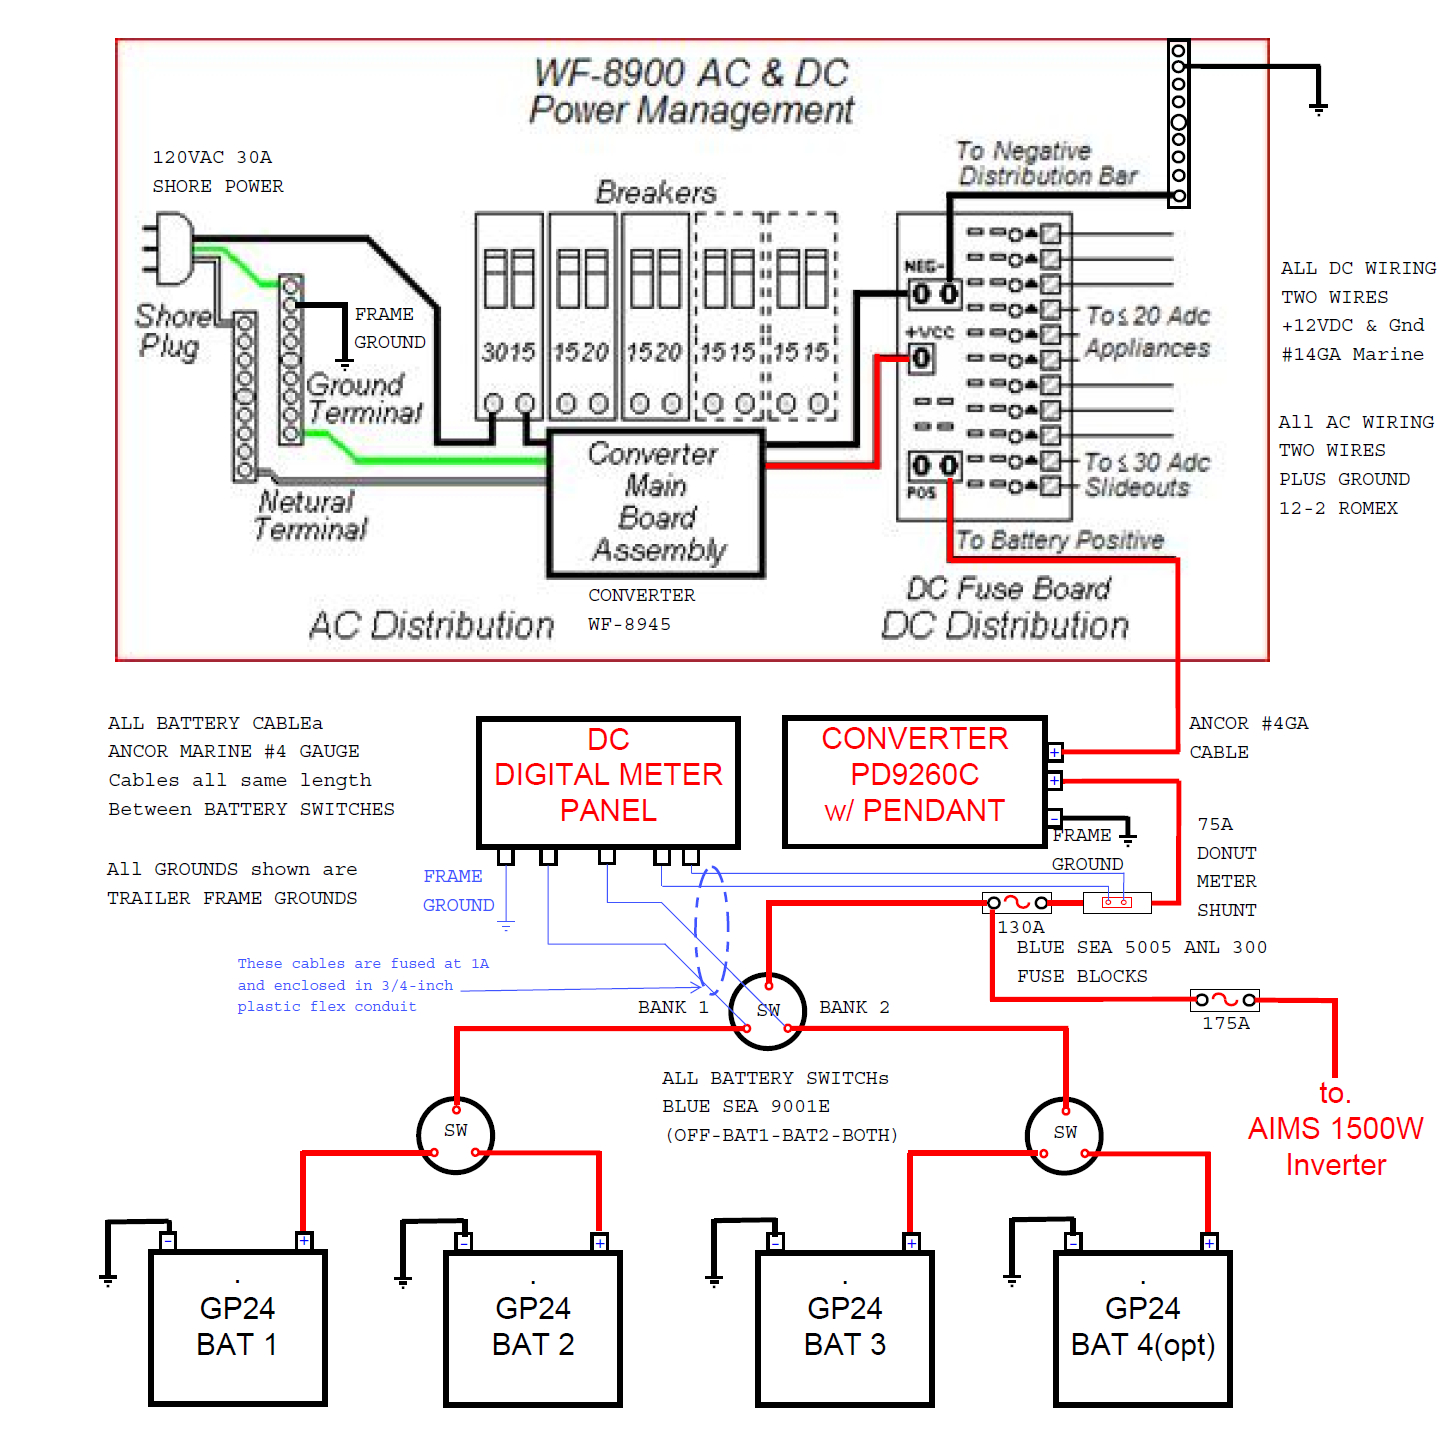 Wiring Diagram Troubleshooting Schematic Rv Power Converter Within - Rv Power Converter Wiring Diagram